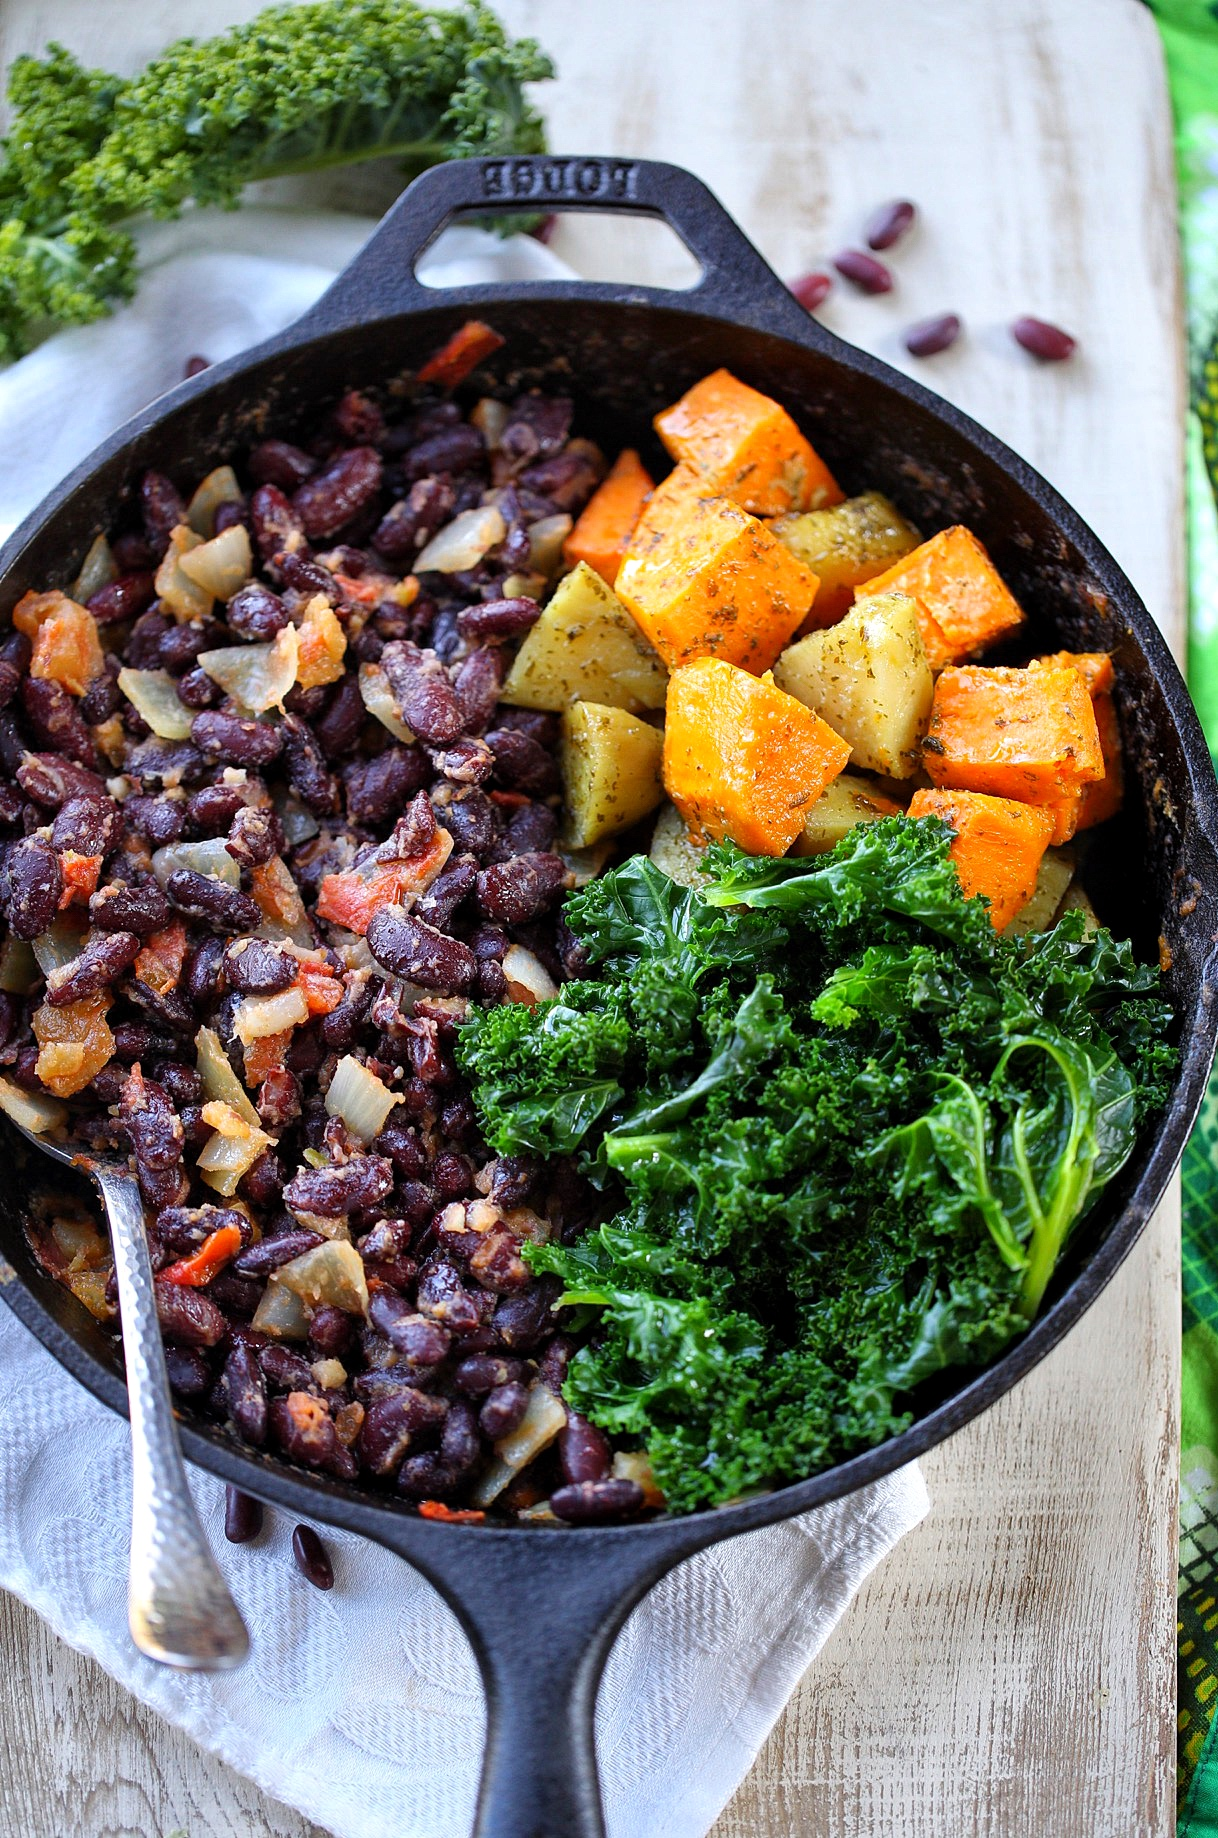 Kidney Beans Sweet Potatoes And Kale Skillet Afrovitalityeats